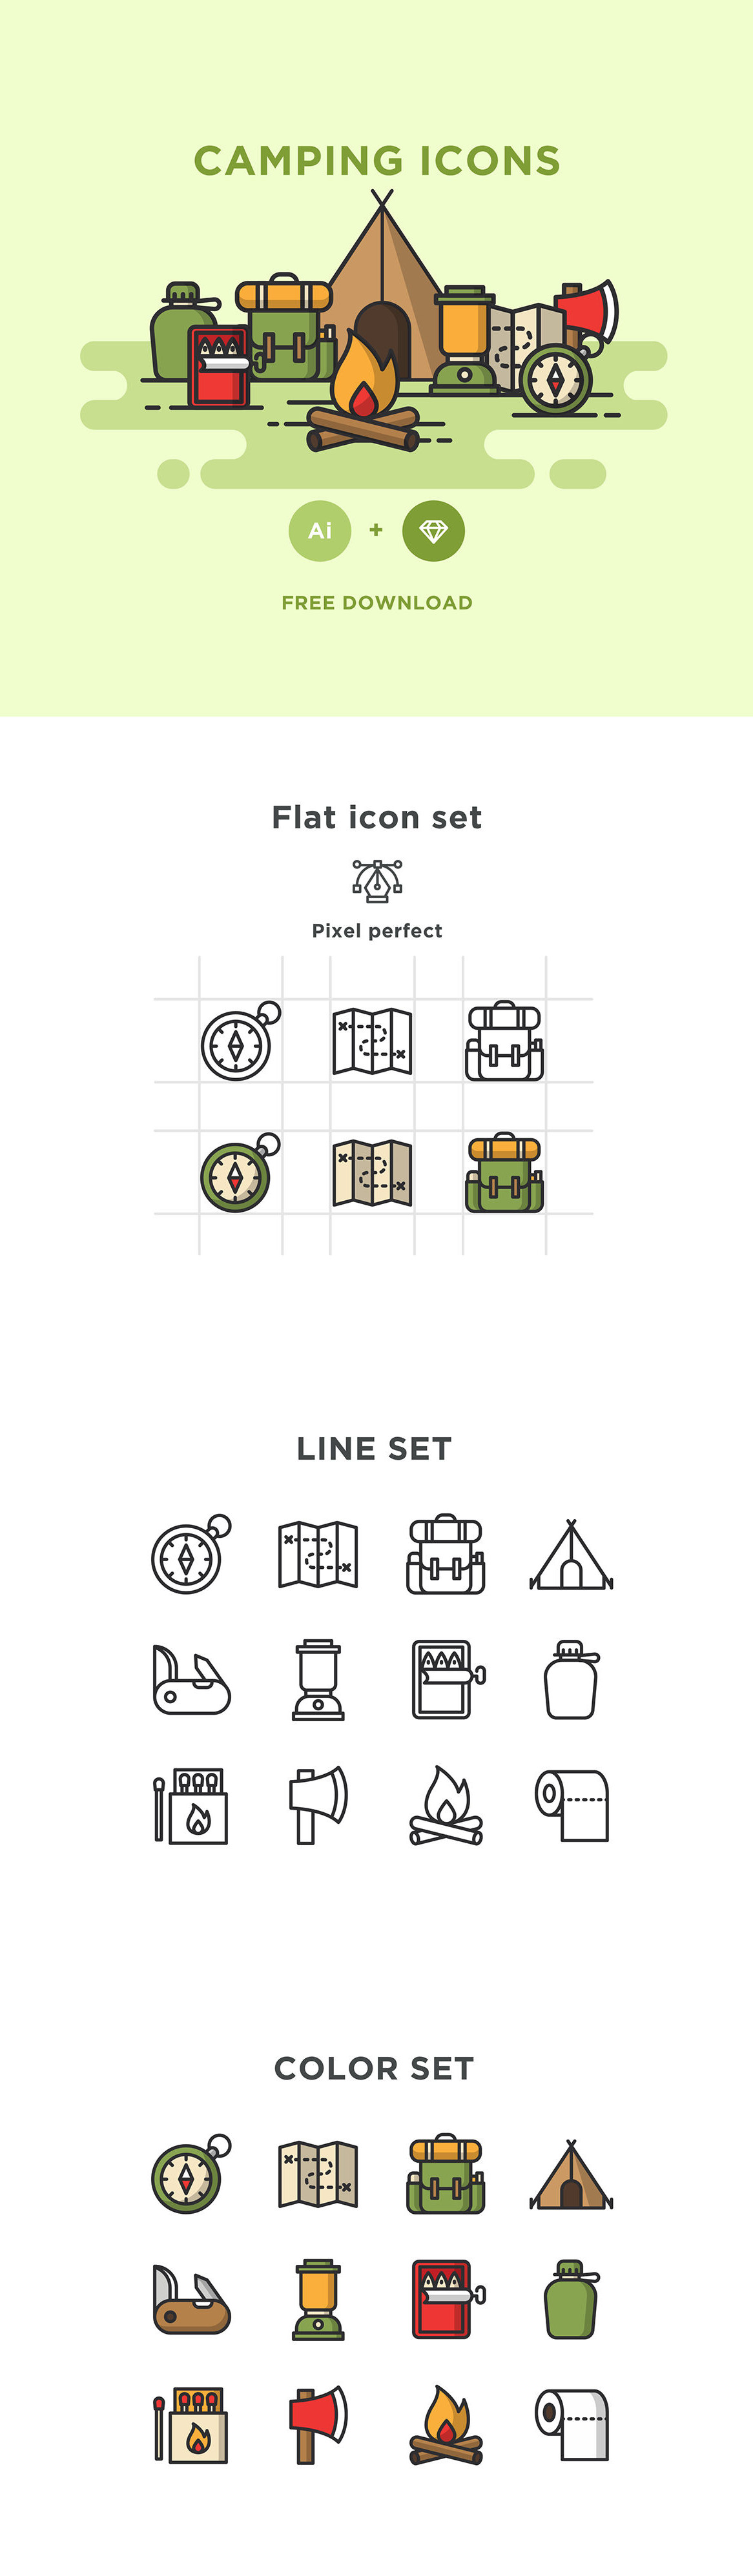 Free 12 Camping Icons